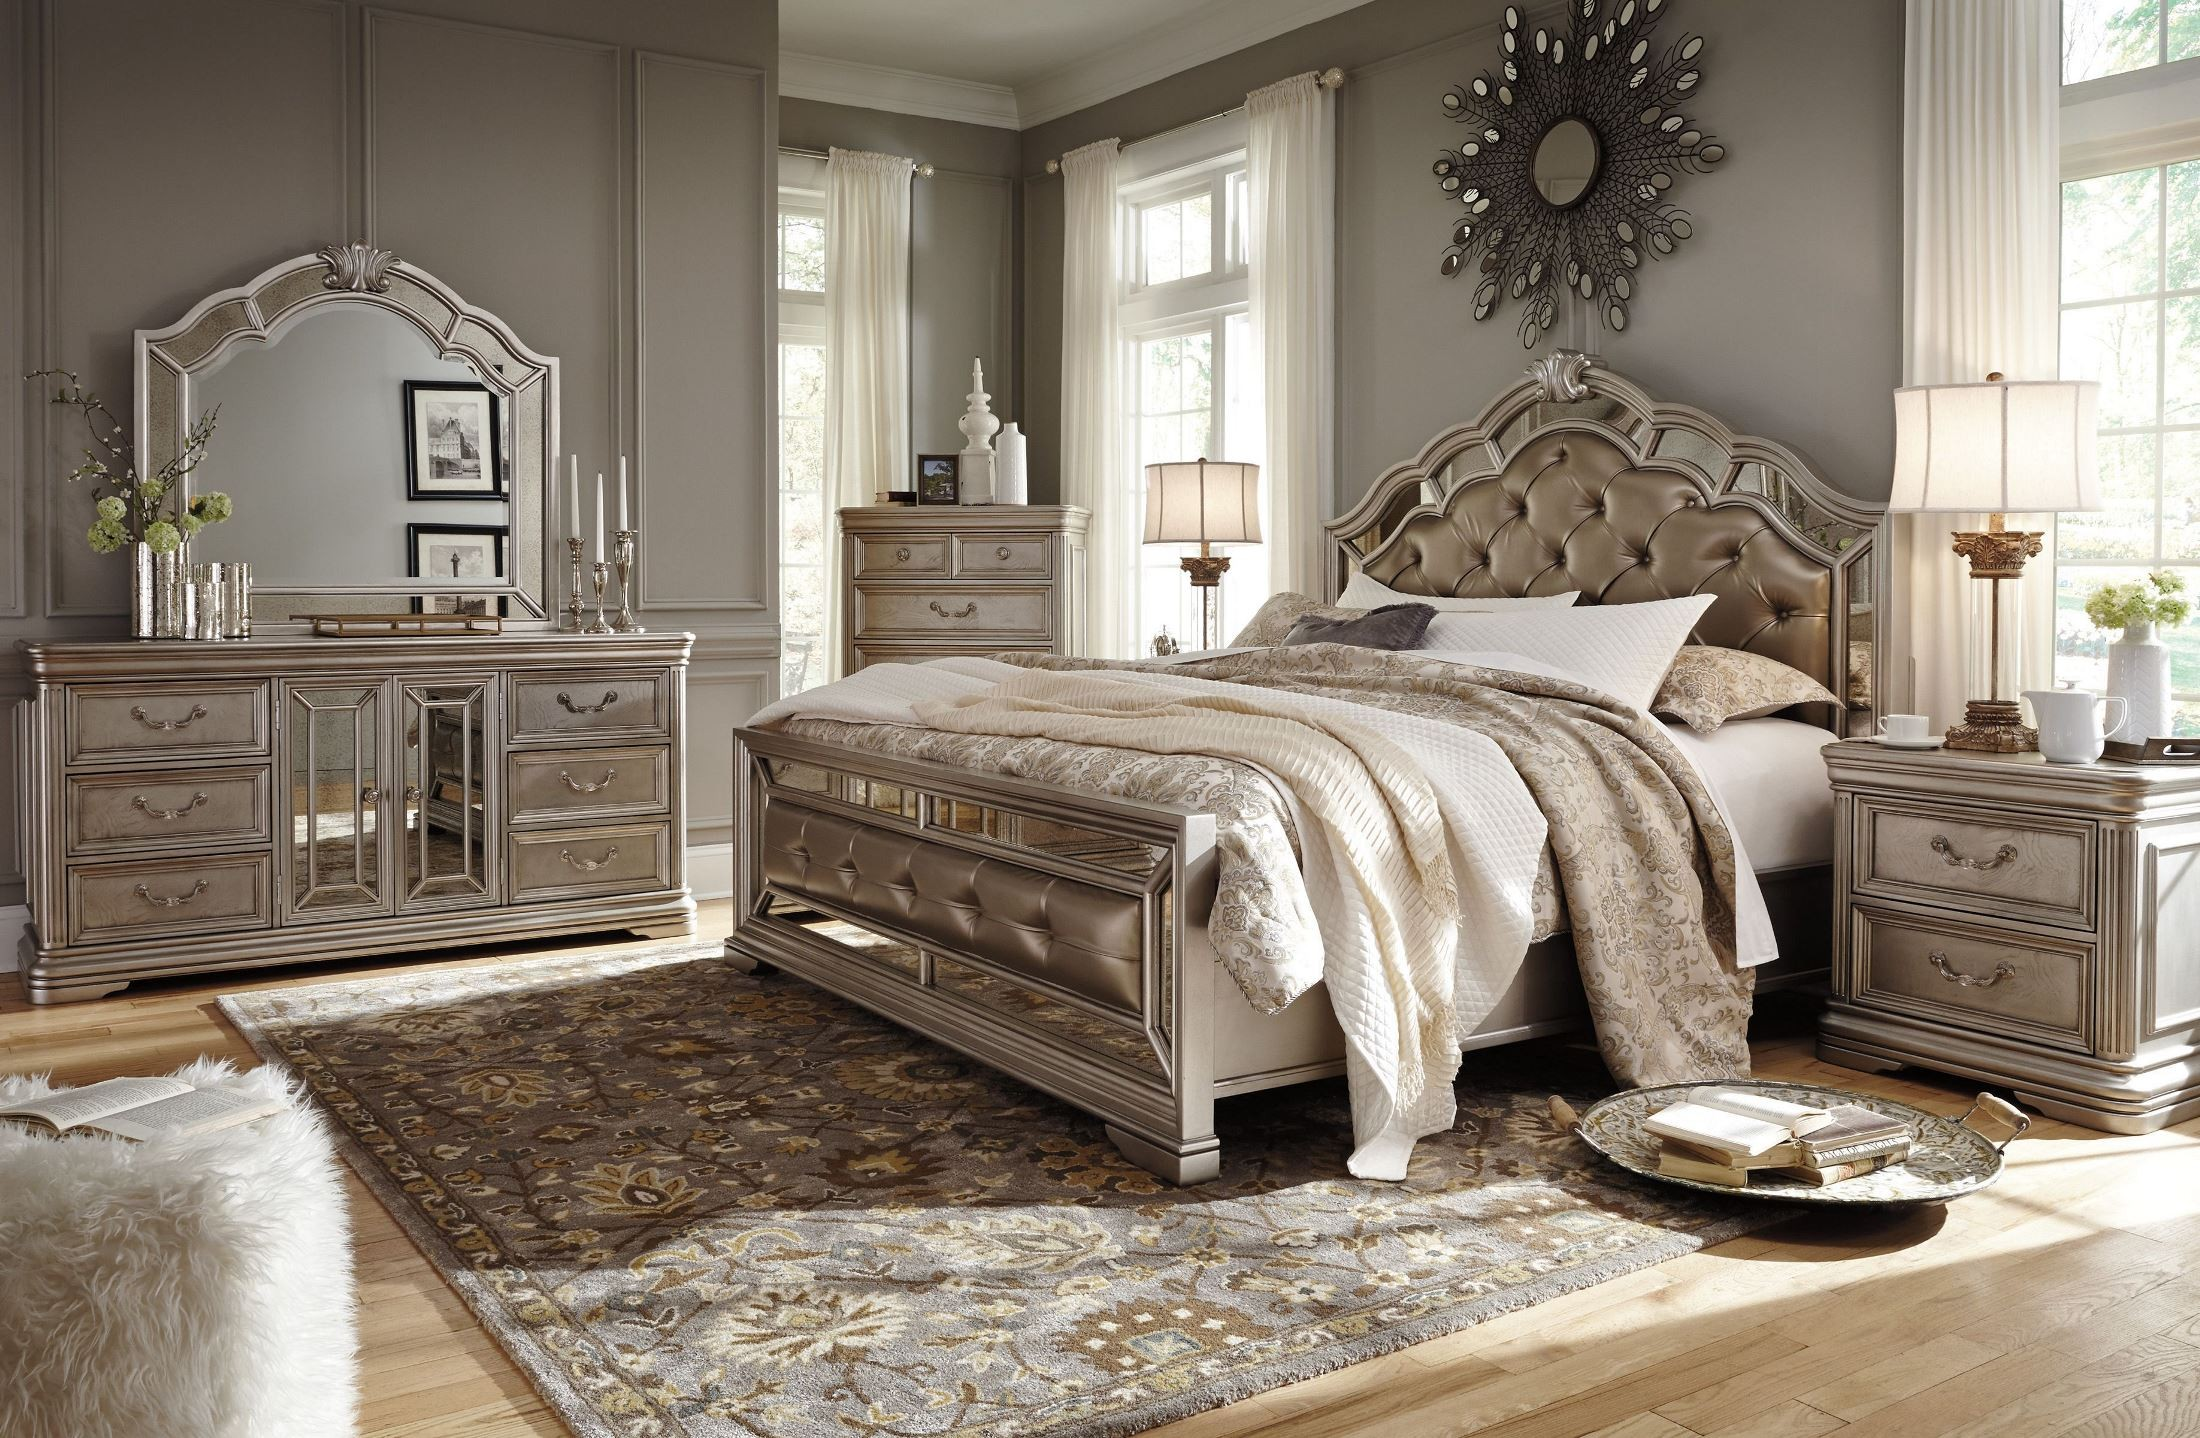 Birlanny silver upholstered panel bedroom set b720 57 54 for Bed settings